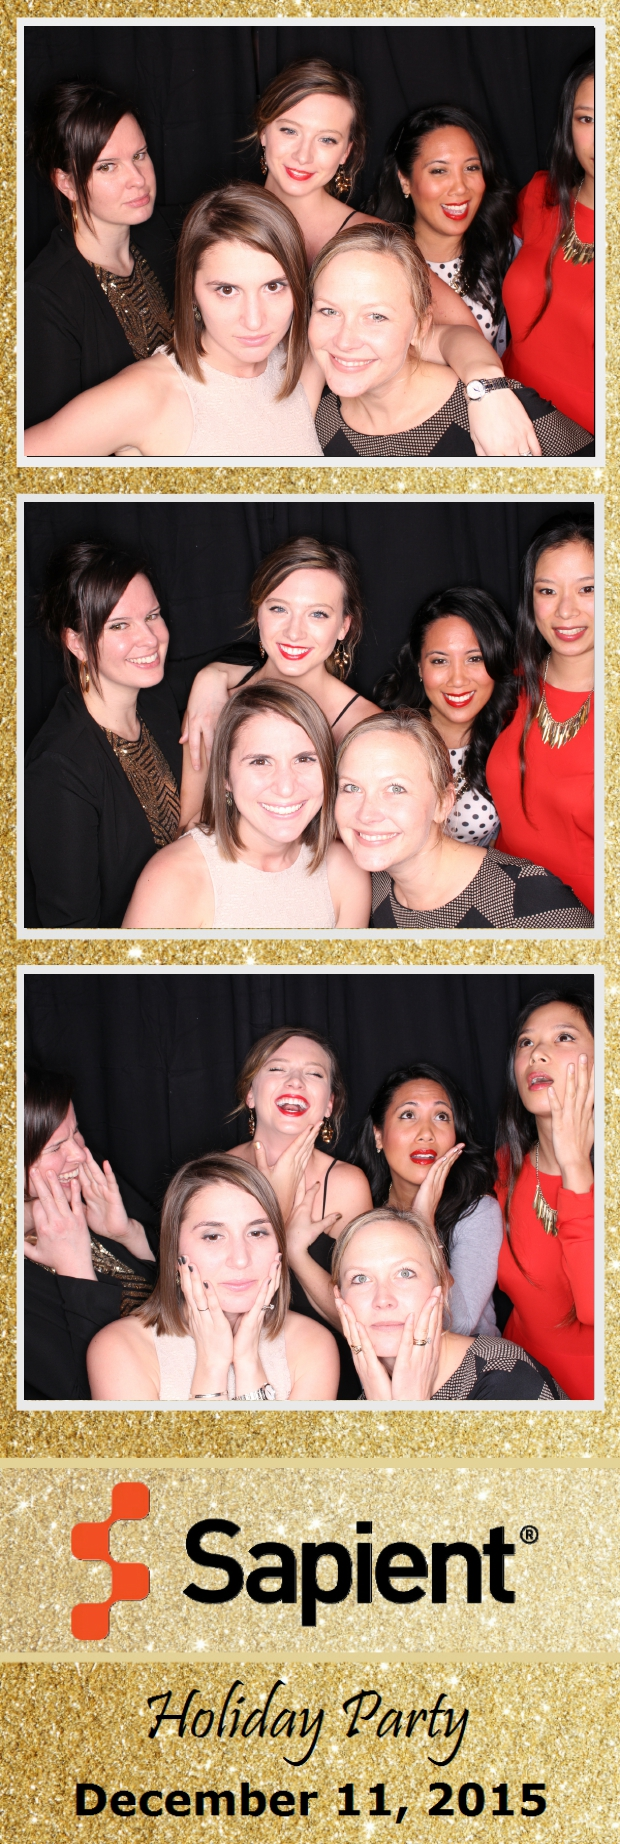 Guest House Events Photo Booth Sapient Holiday Party (13).jpg